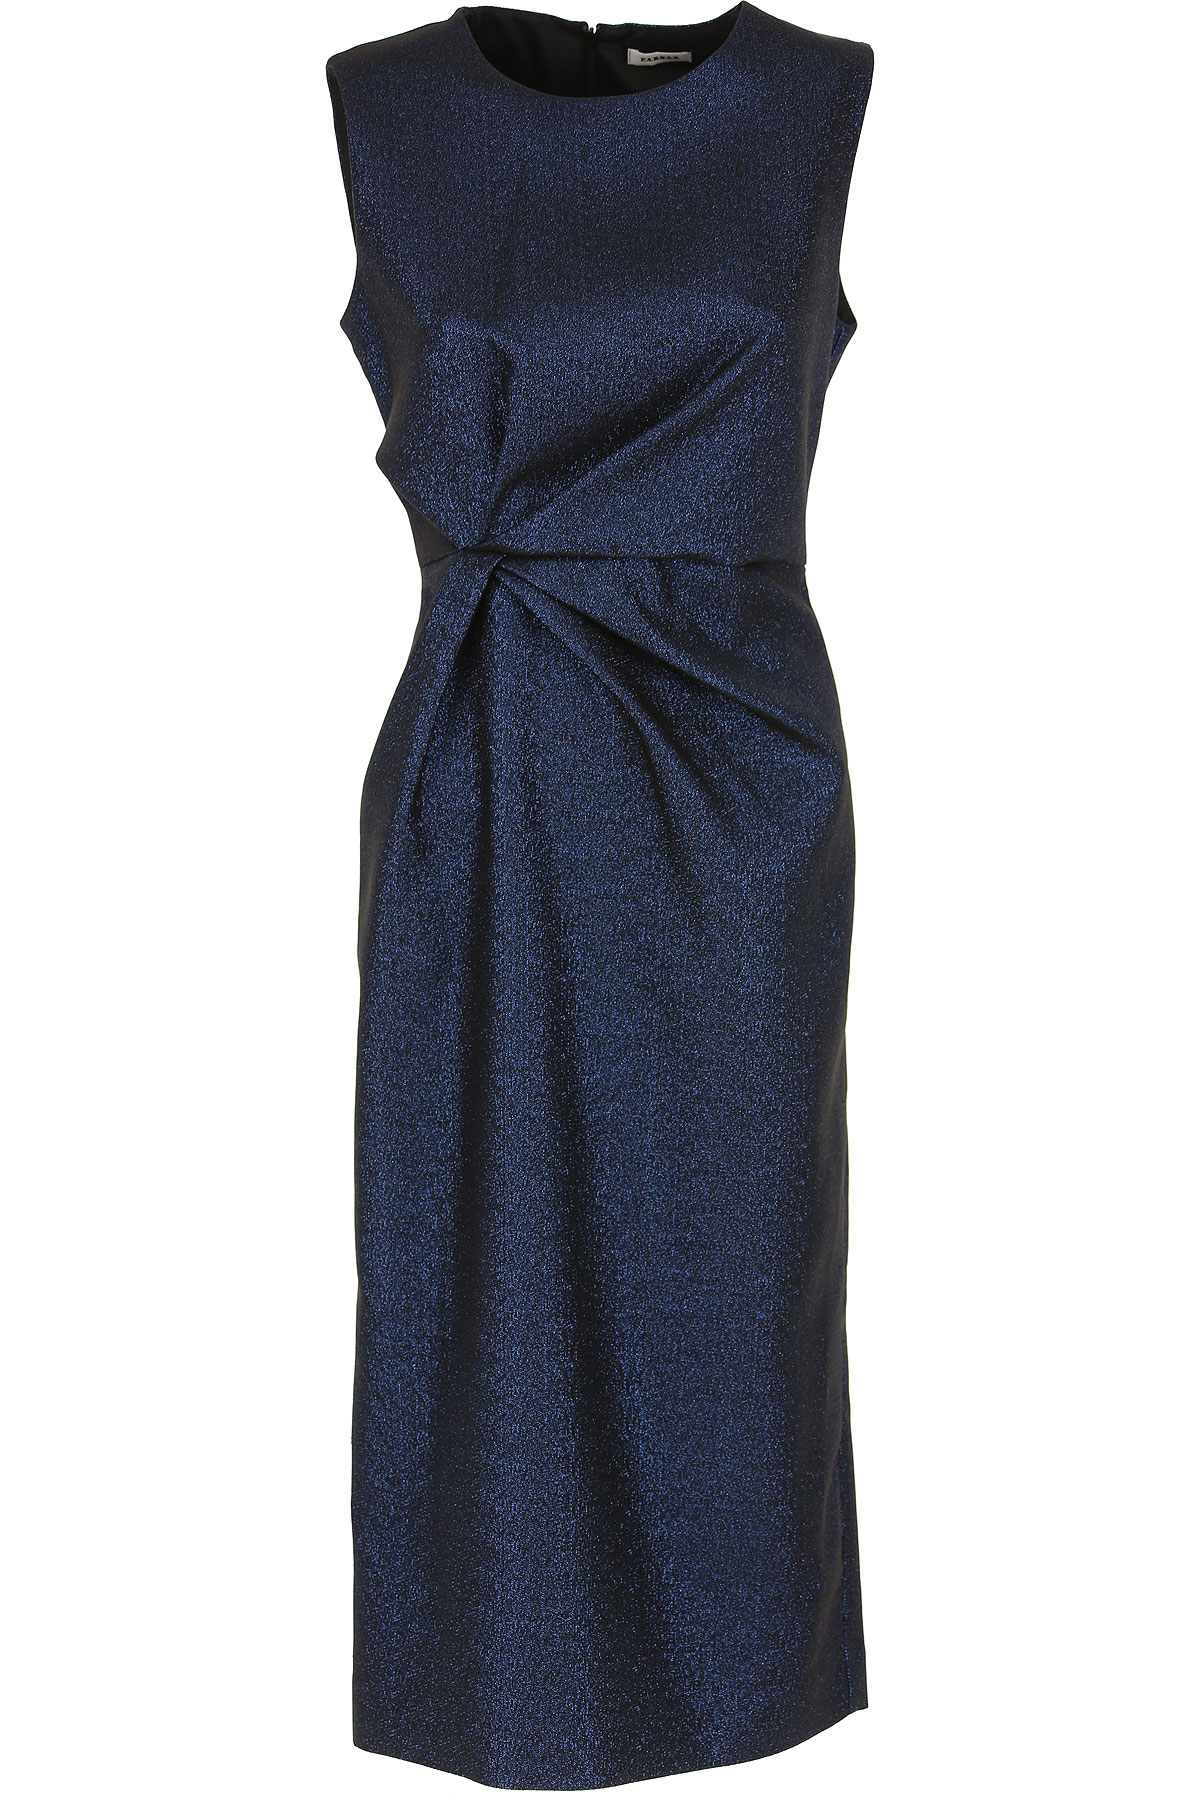 P.A.R.O.S.H. Dress for Women, Evening Cocktail Party On Sale, Midnight Blue, polyester, 2019, 2 4